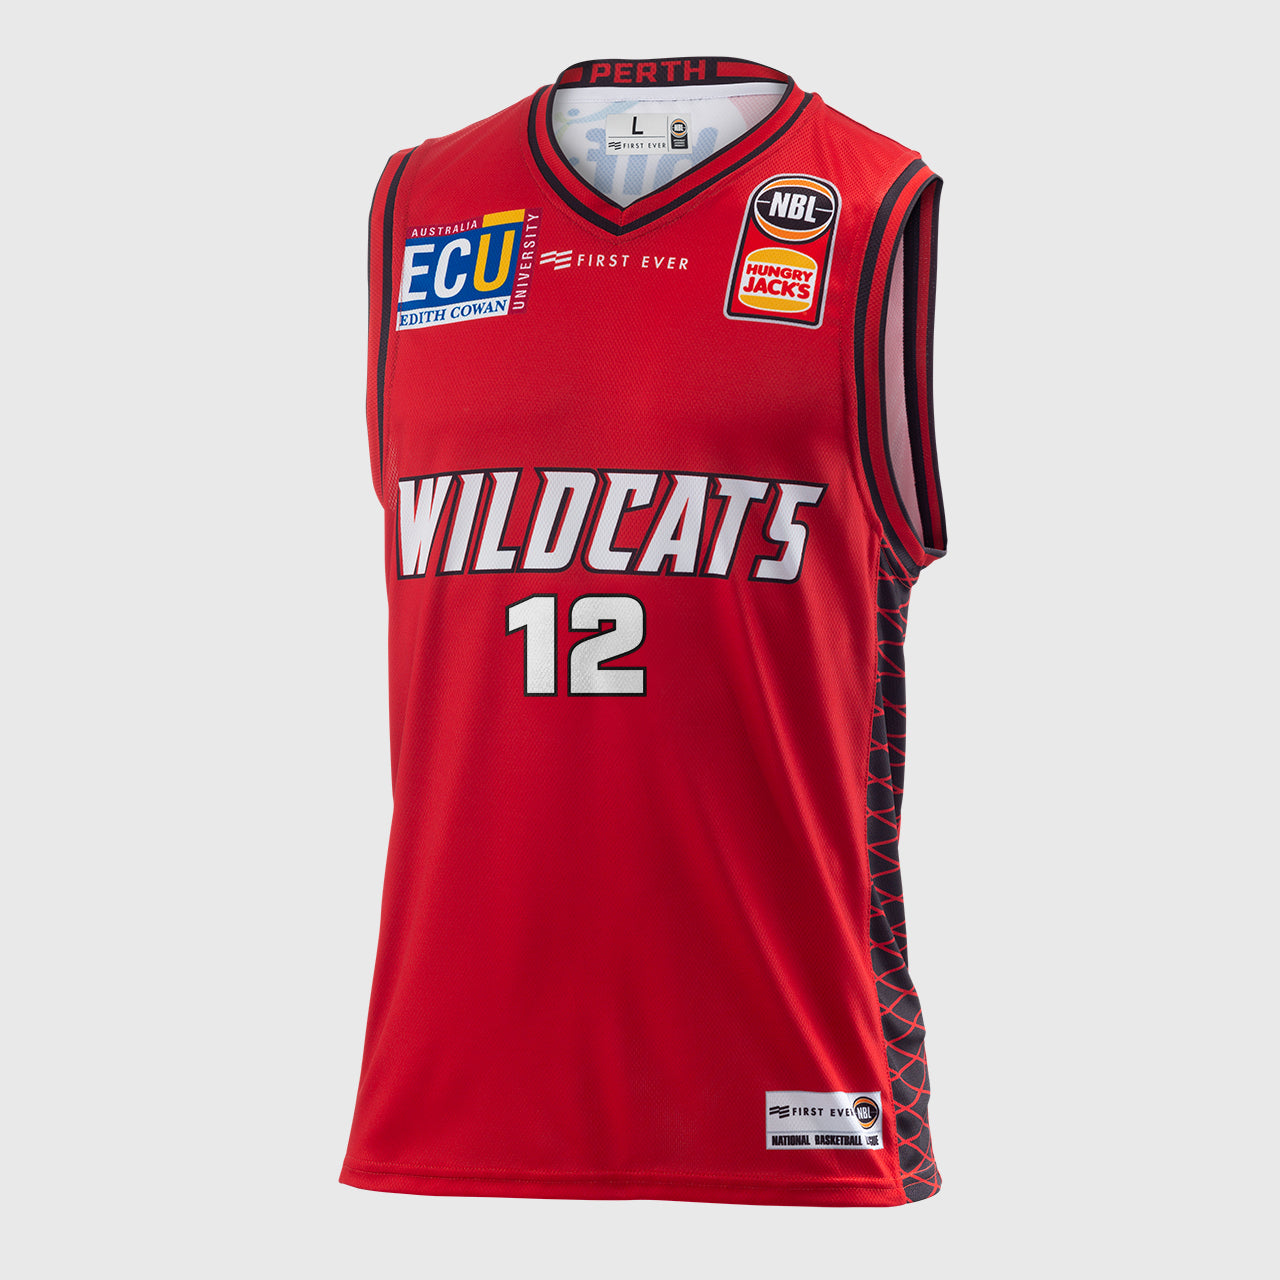 Perth Wildcats 18/19 Authentic Jersey - Angus Brandt